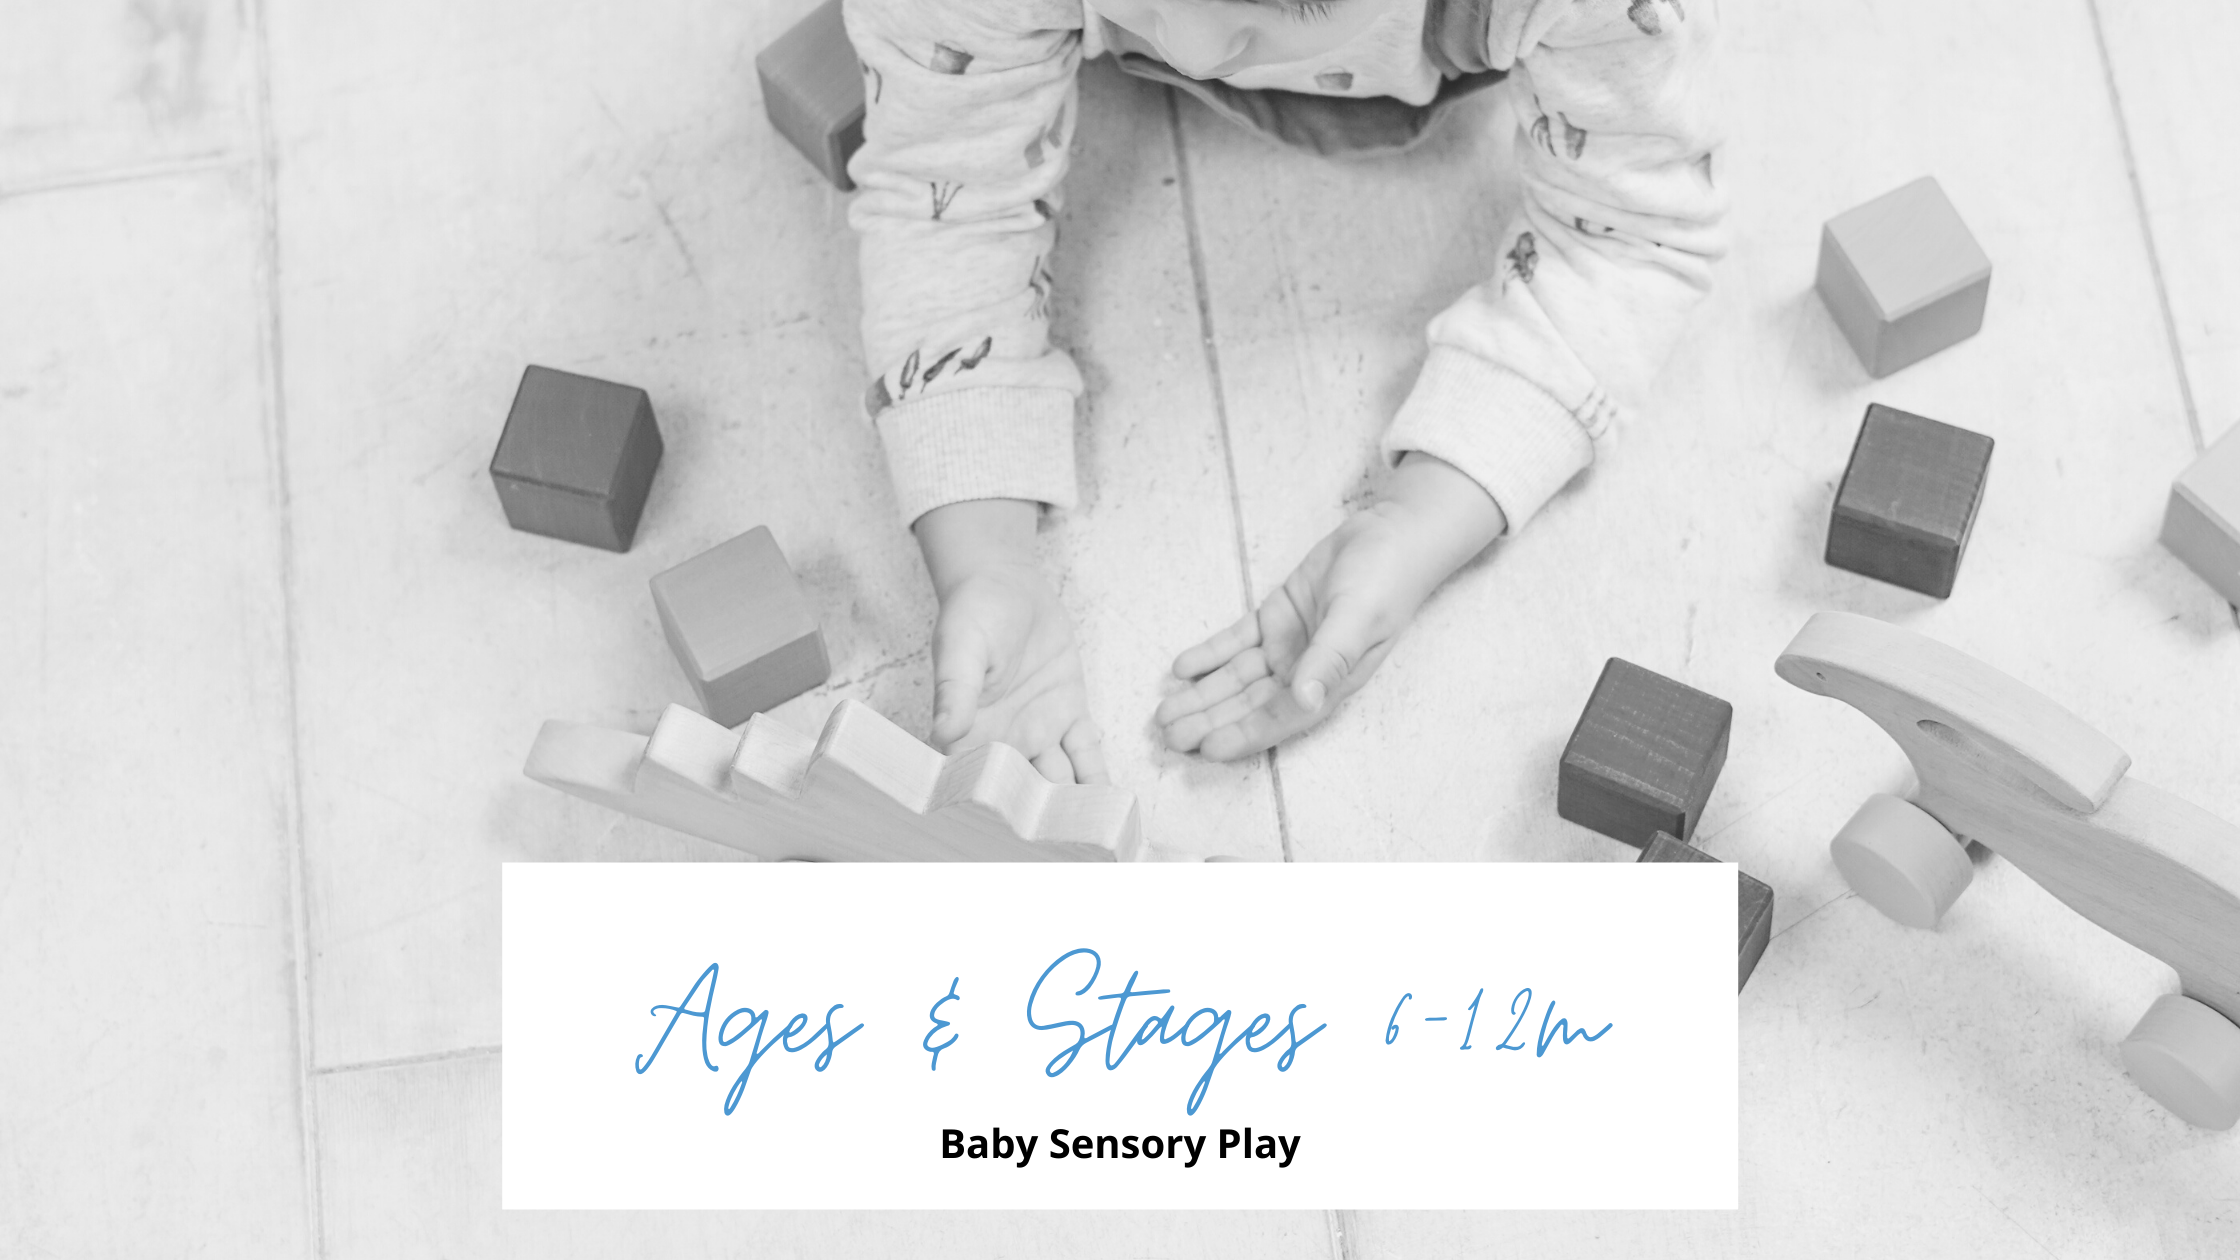 Baby Sensory play in Barrie and Simcoe County